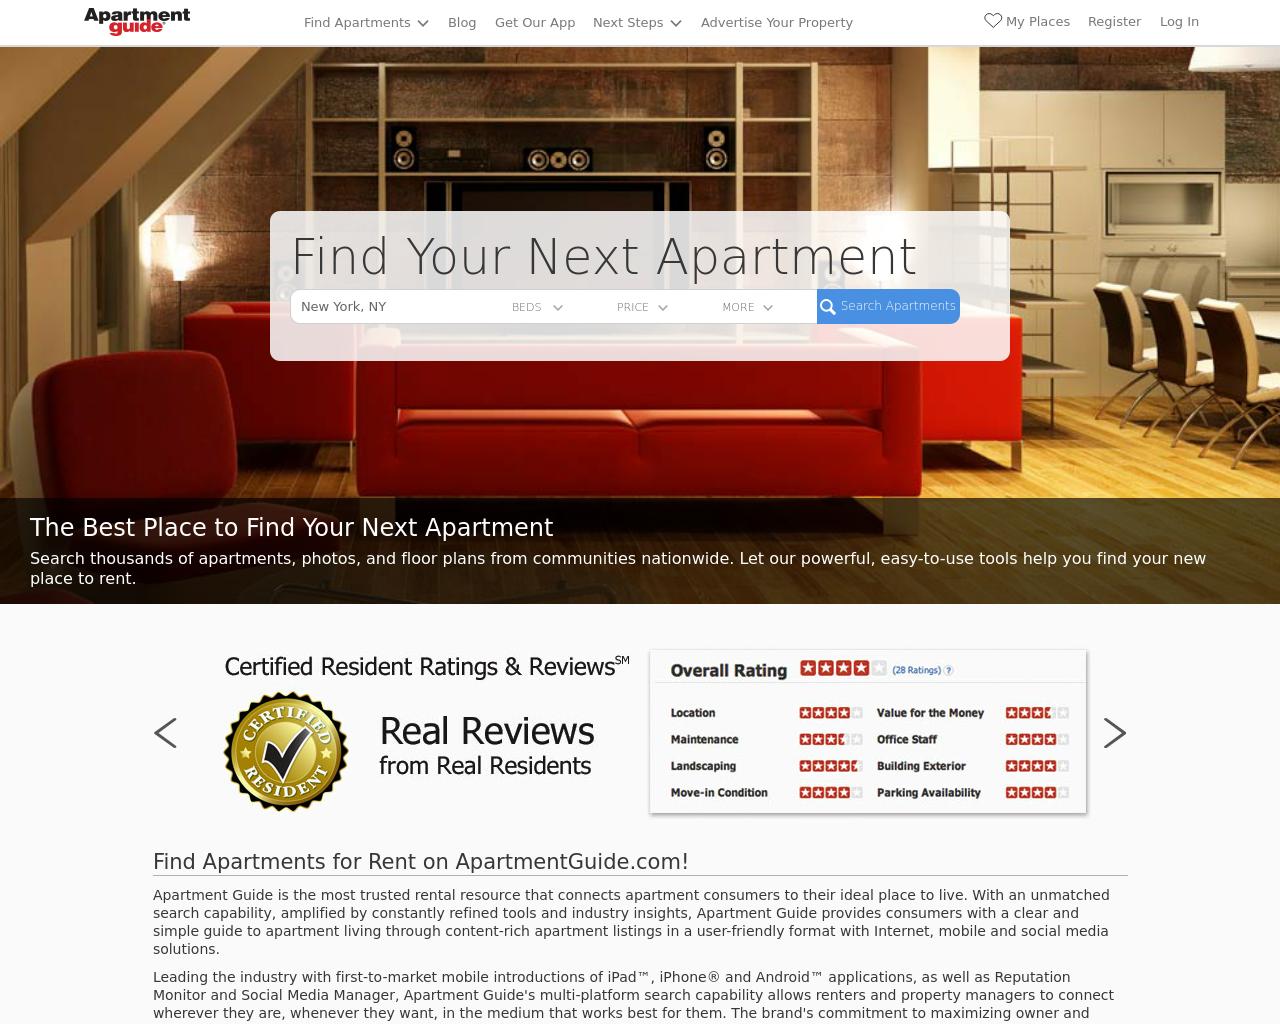 Apartment Guide Advertising Reviews Pricing